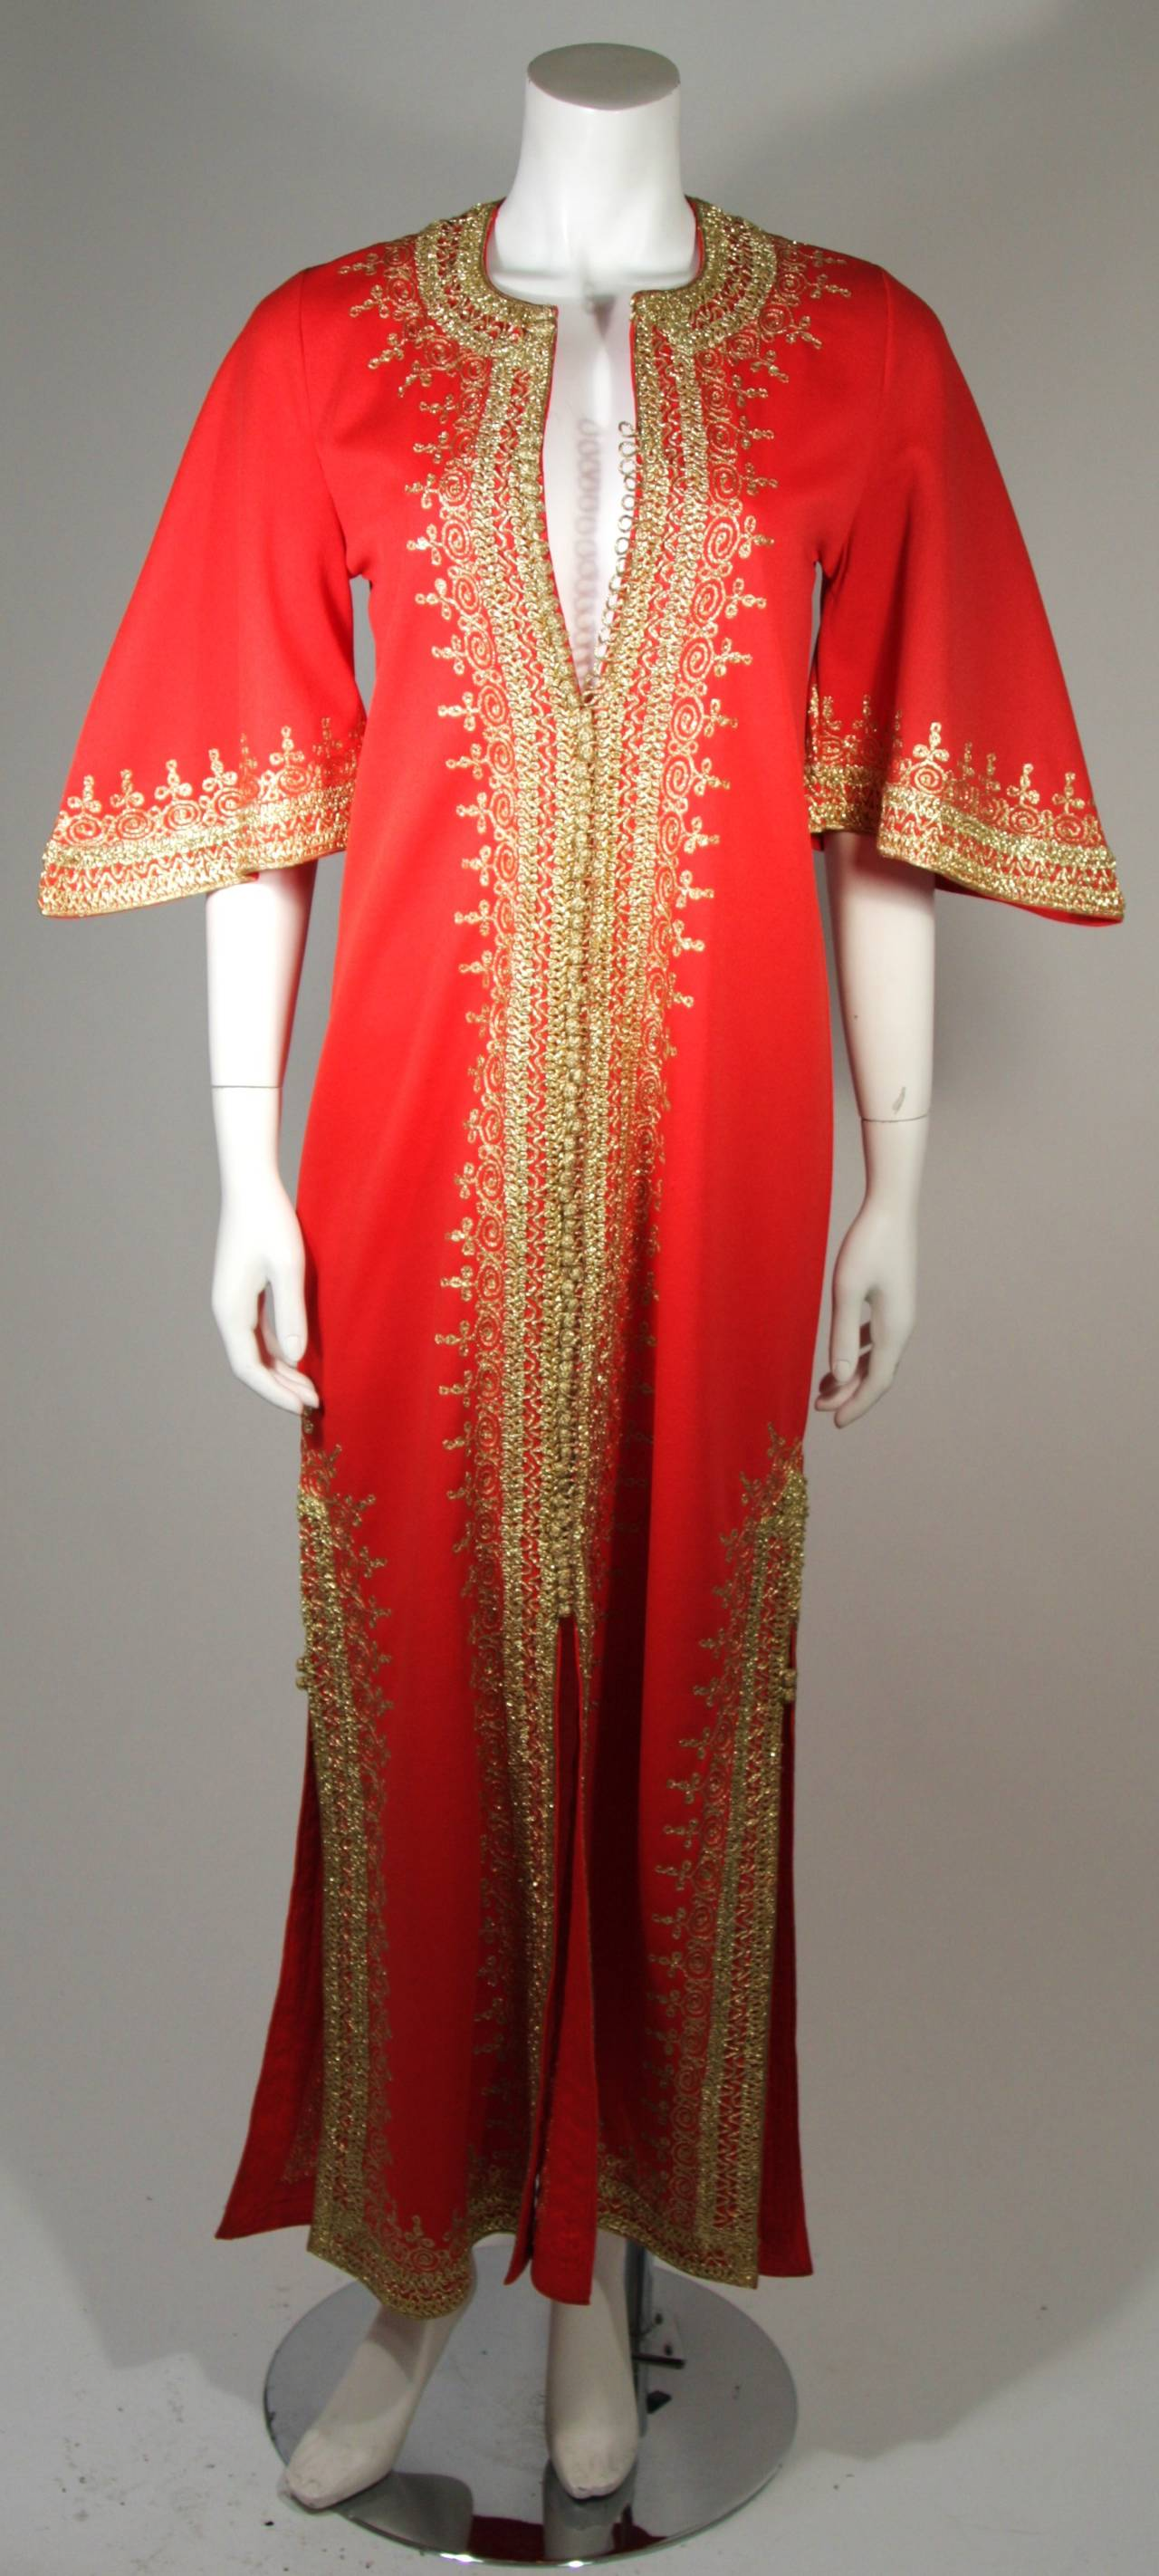 This custom vintage kaftan is composed of an orange knit and is trimmed with metallic gold. There are center front buttons, bell sleeves, and side slits. A very interesting garment in excellent condition.   **The size in the description box is an